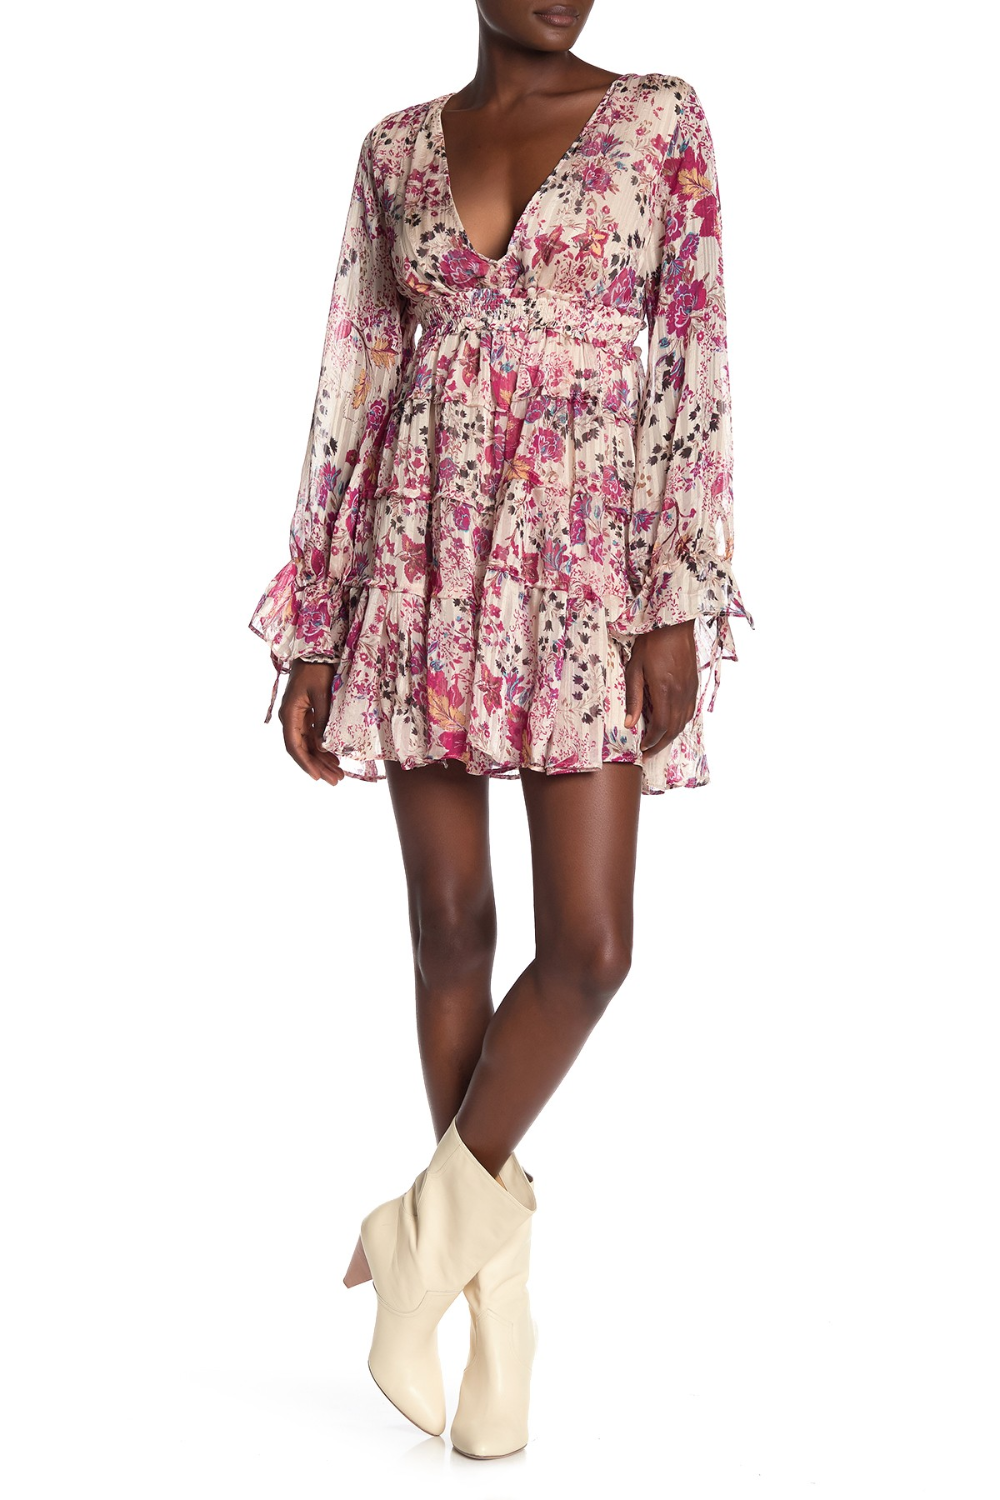 Free People Closer To The Heart Floral Mini Dress In 2020